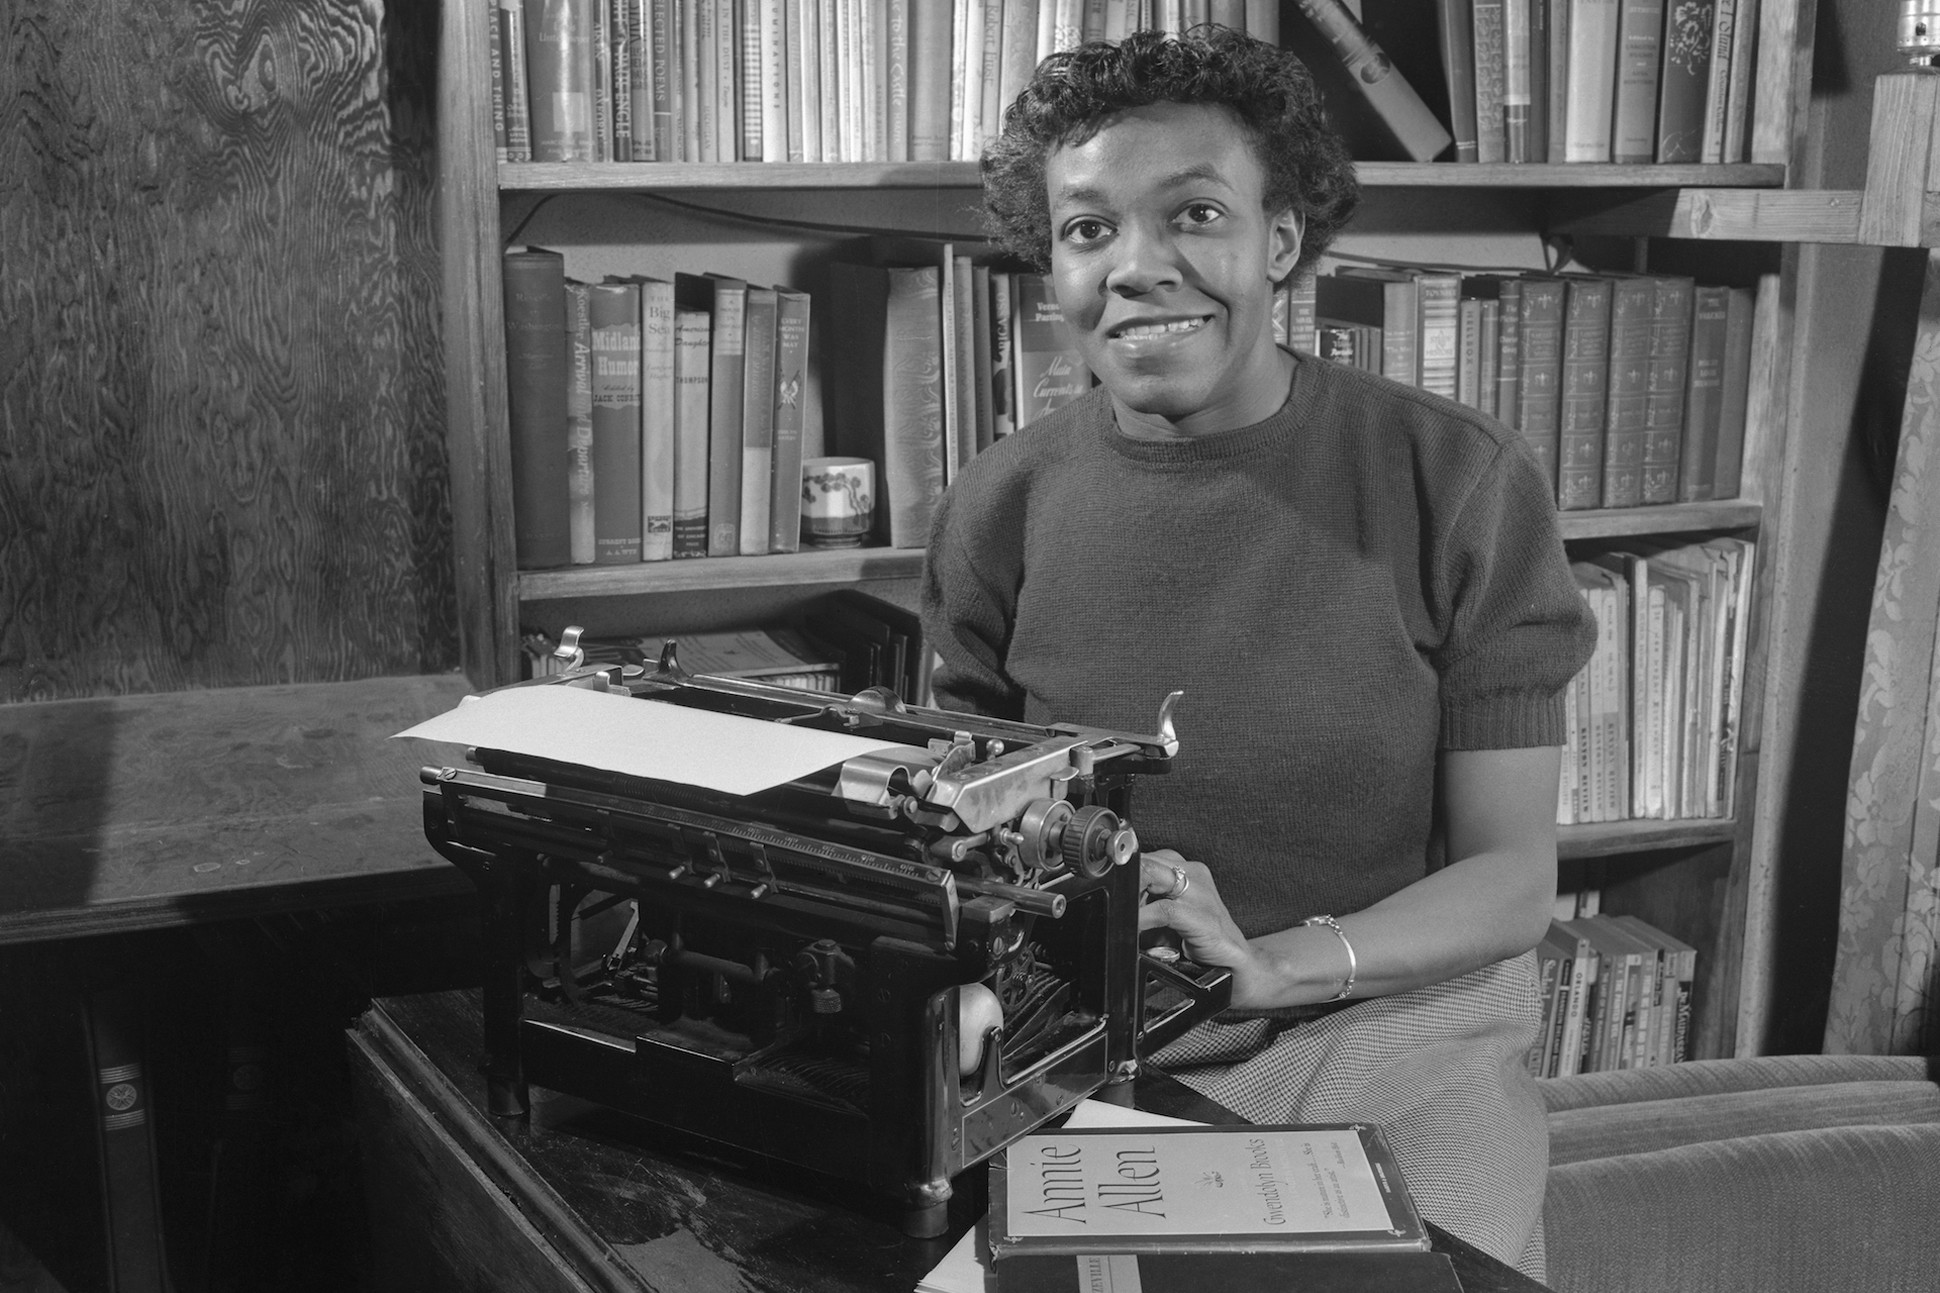 the mother by gwendolyn brooks About gwendolyn brooks gwendolyn brooks grew up in chicago in a poor yet stable and loving family her father was a janitor who had hoped to become a doctor her mother a teacher and classically trained pianist.